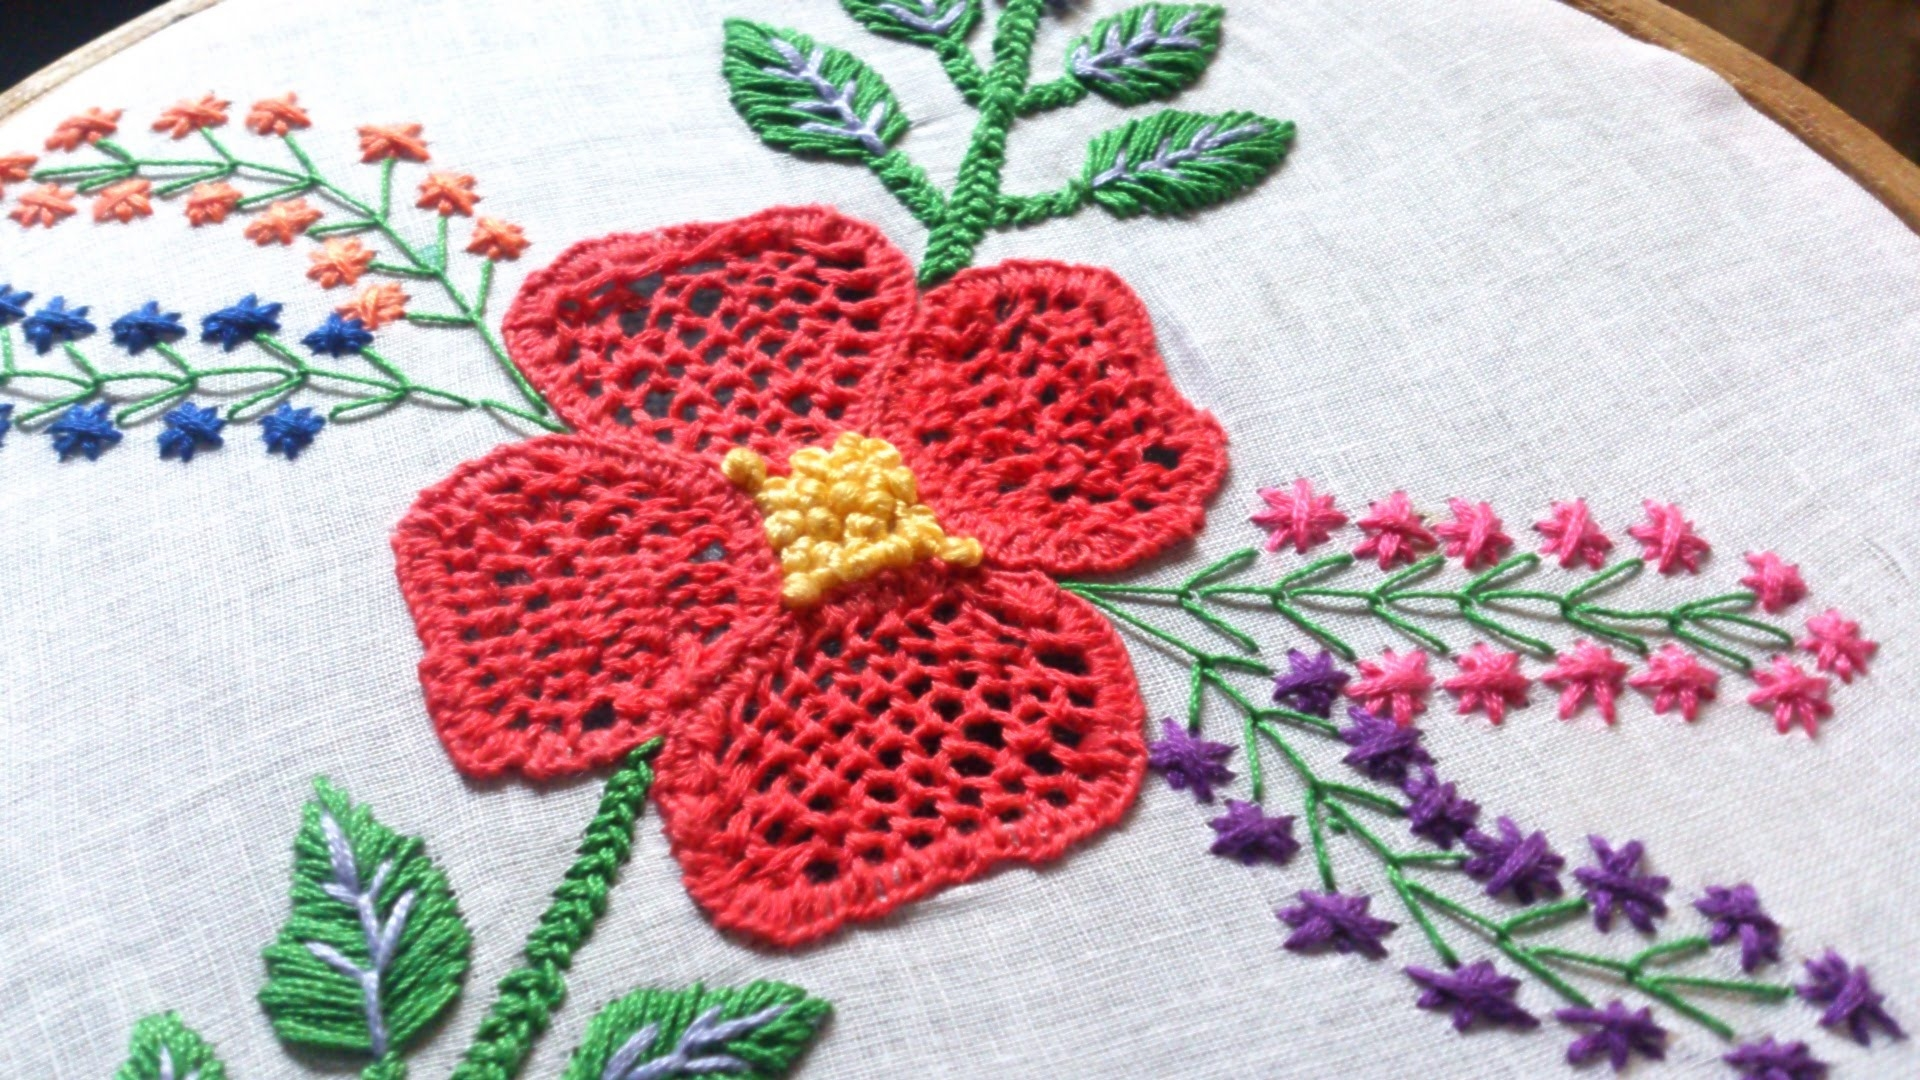 Embroidery Designs and Patterns (@embdesignsandpatterns) Cover Image